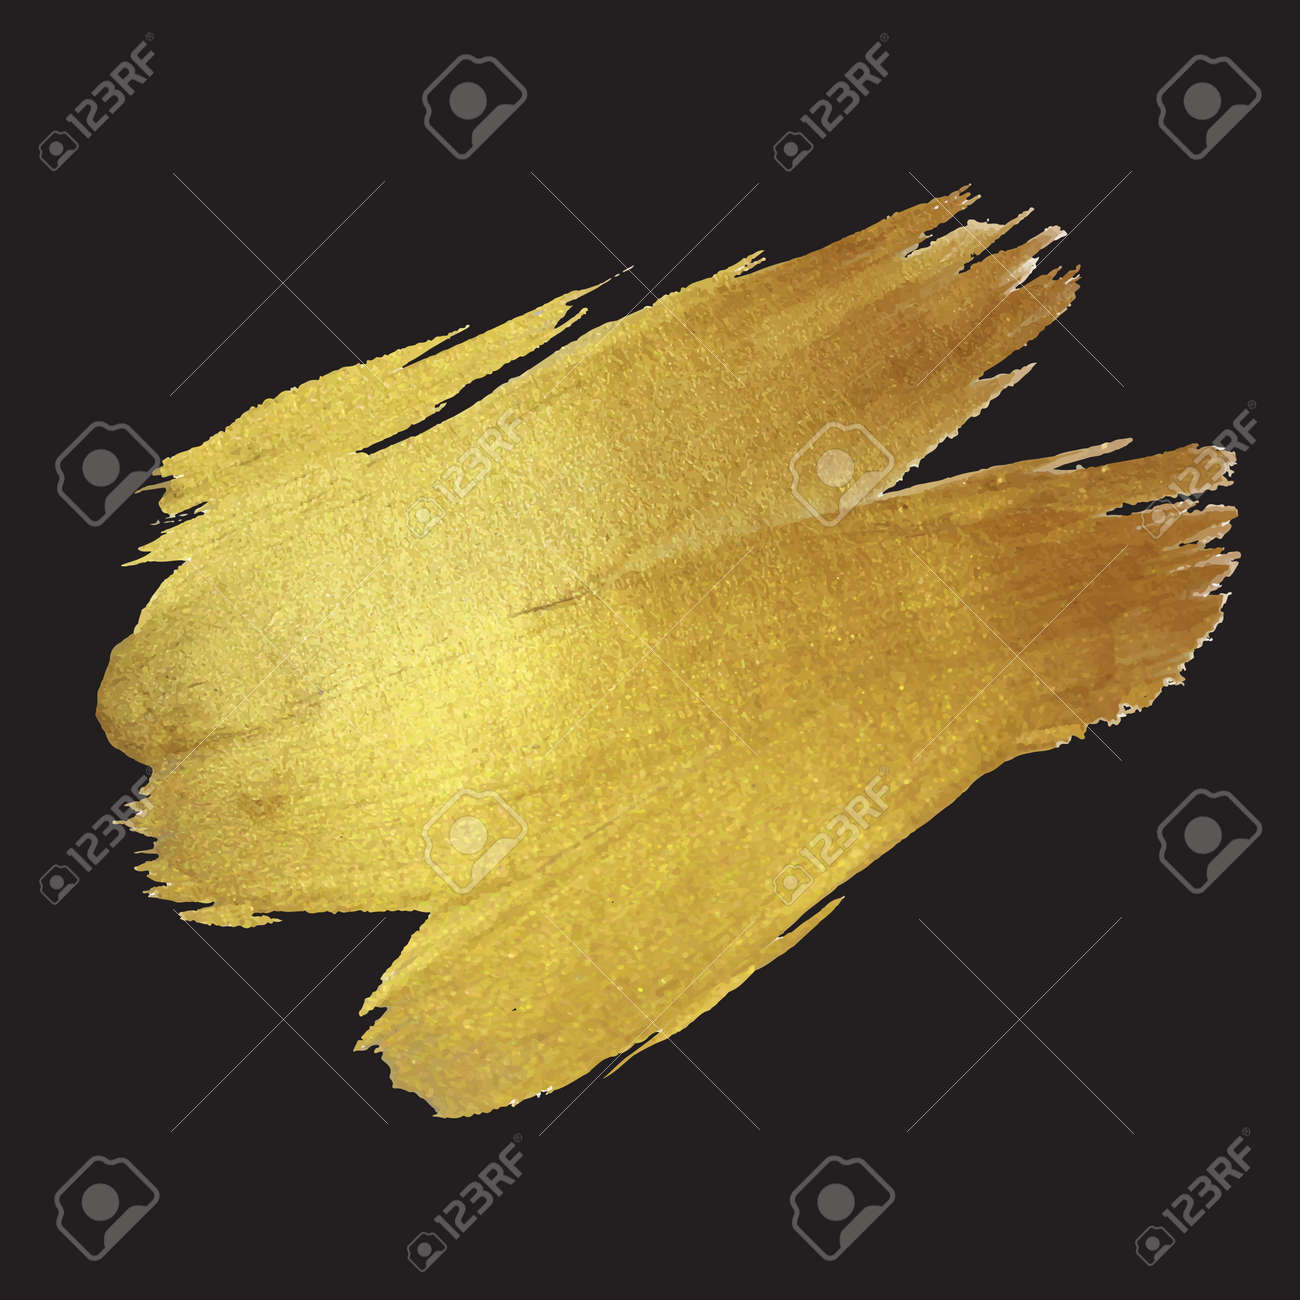 Gold Shining Paint Stain Hand Drawn Illustration - 43577466